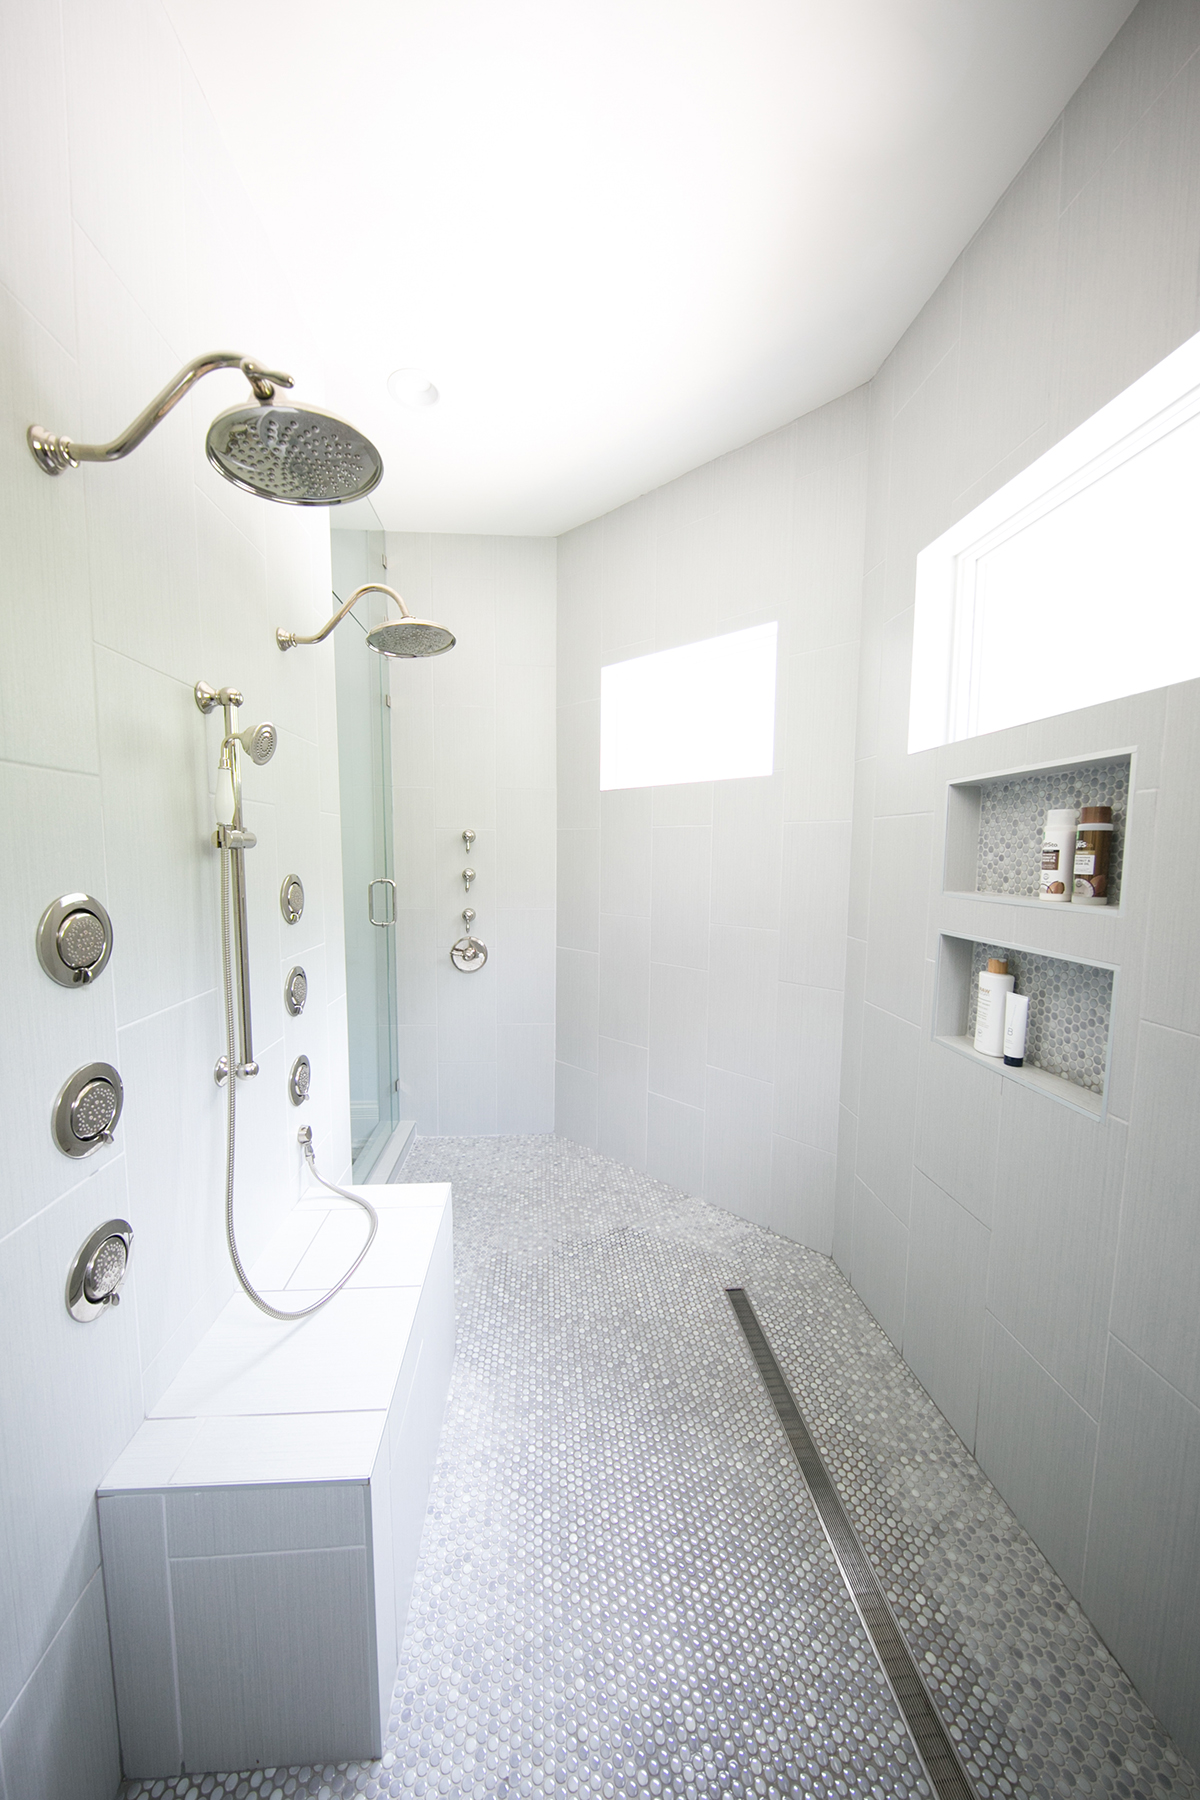 Modern and Bright Master Bathroom Remodel